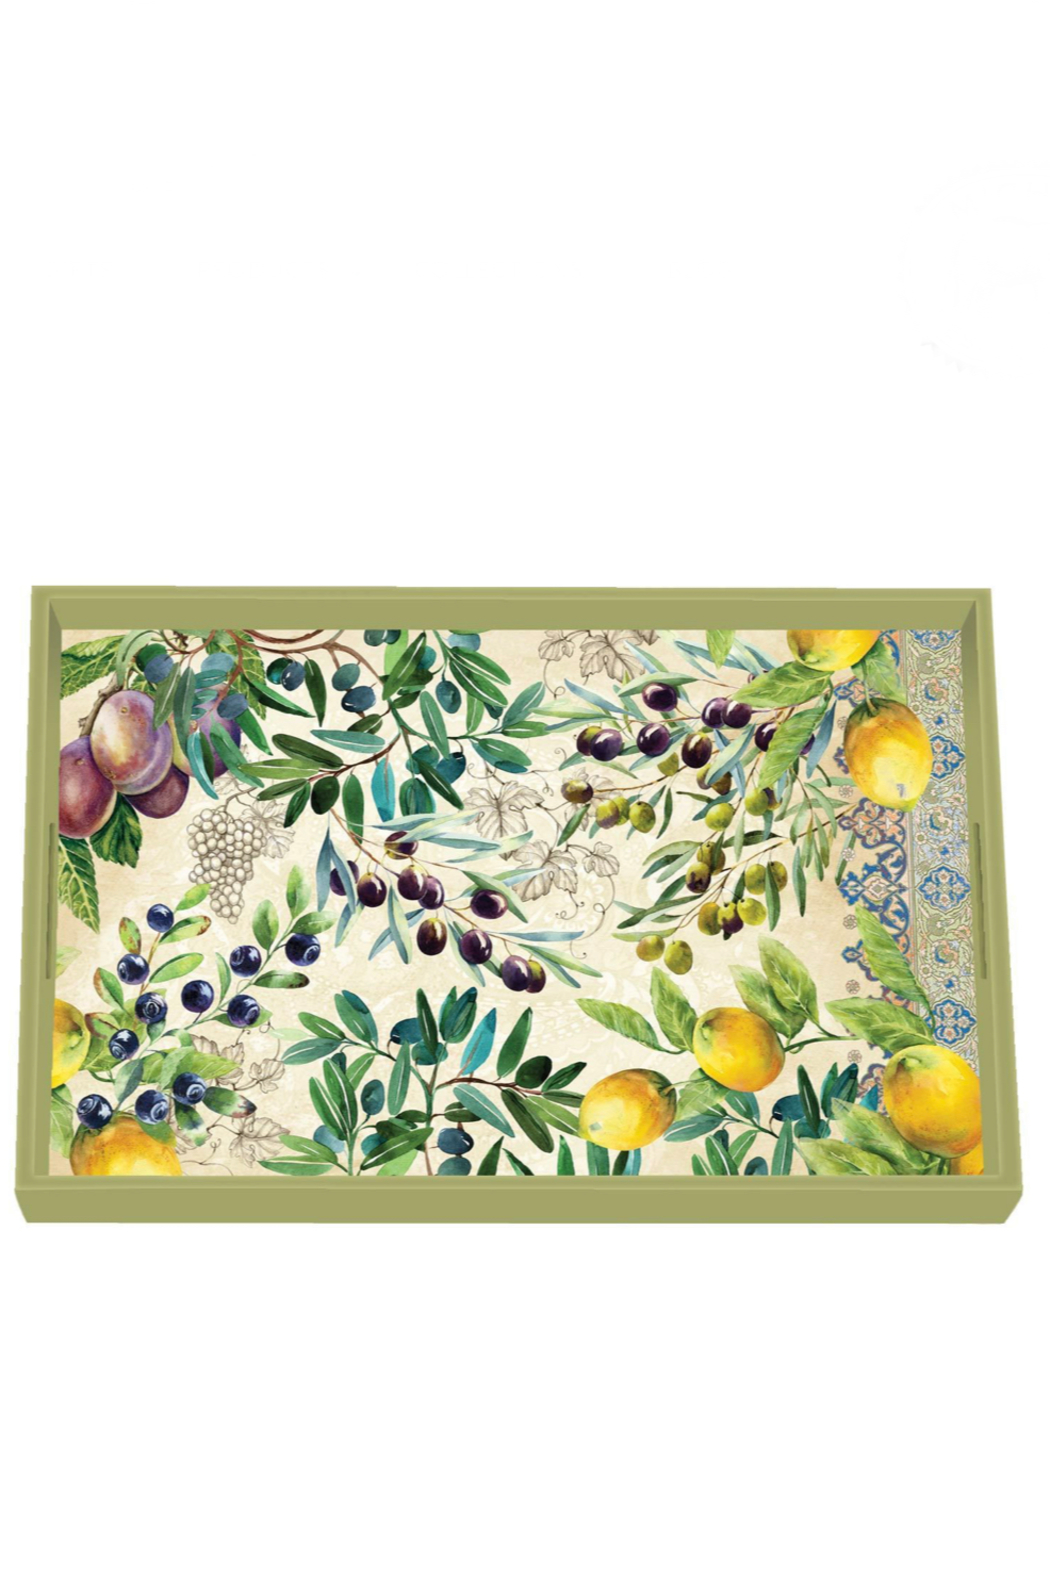 Michel Design Works Tuscan Grove Decoupage Wooden Vanity Tray - Main Image